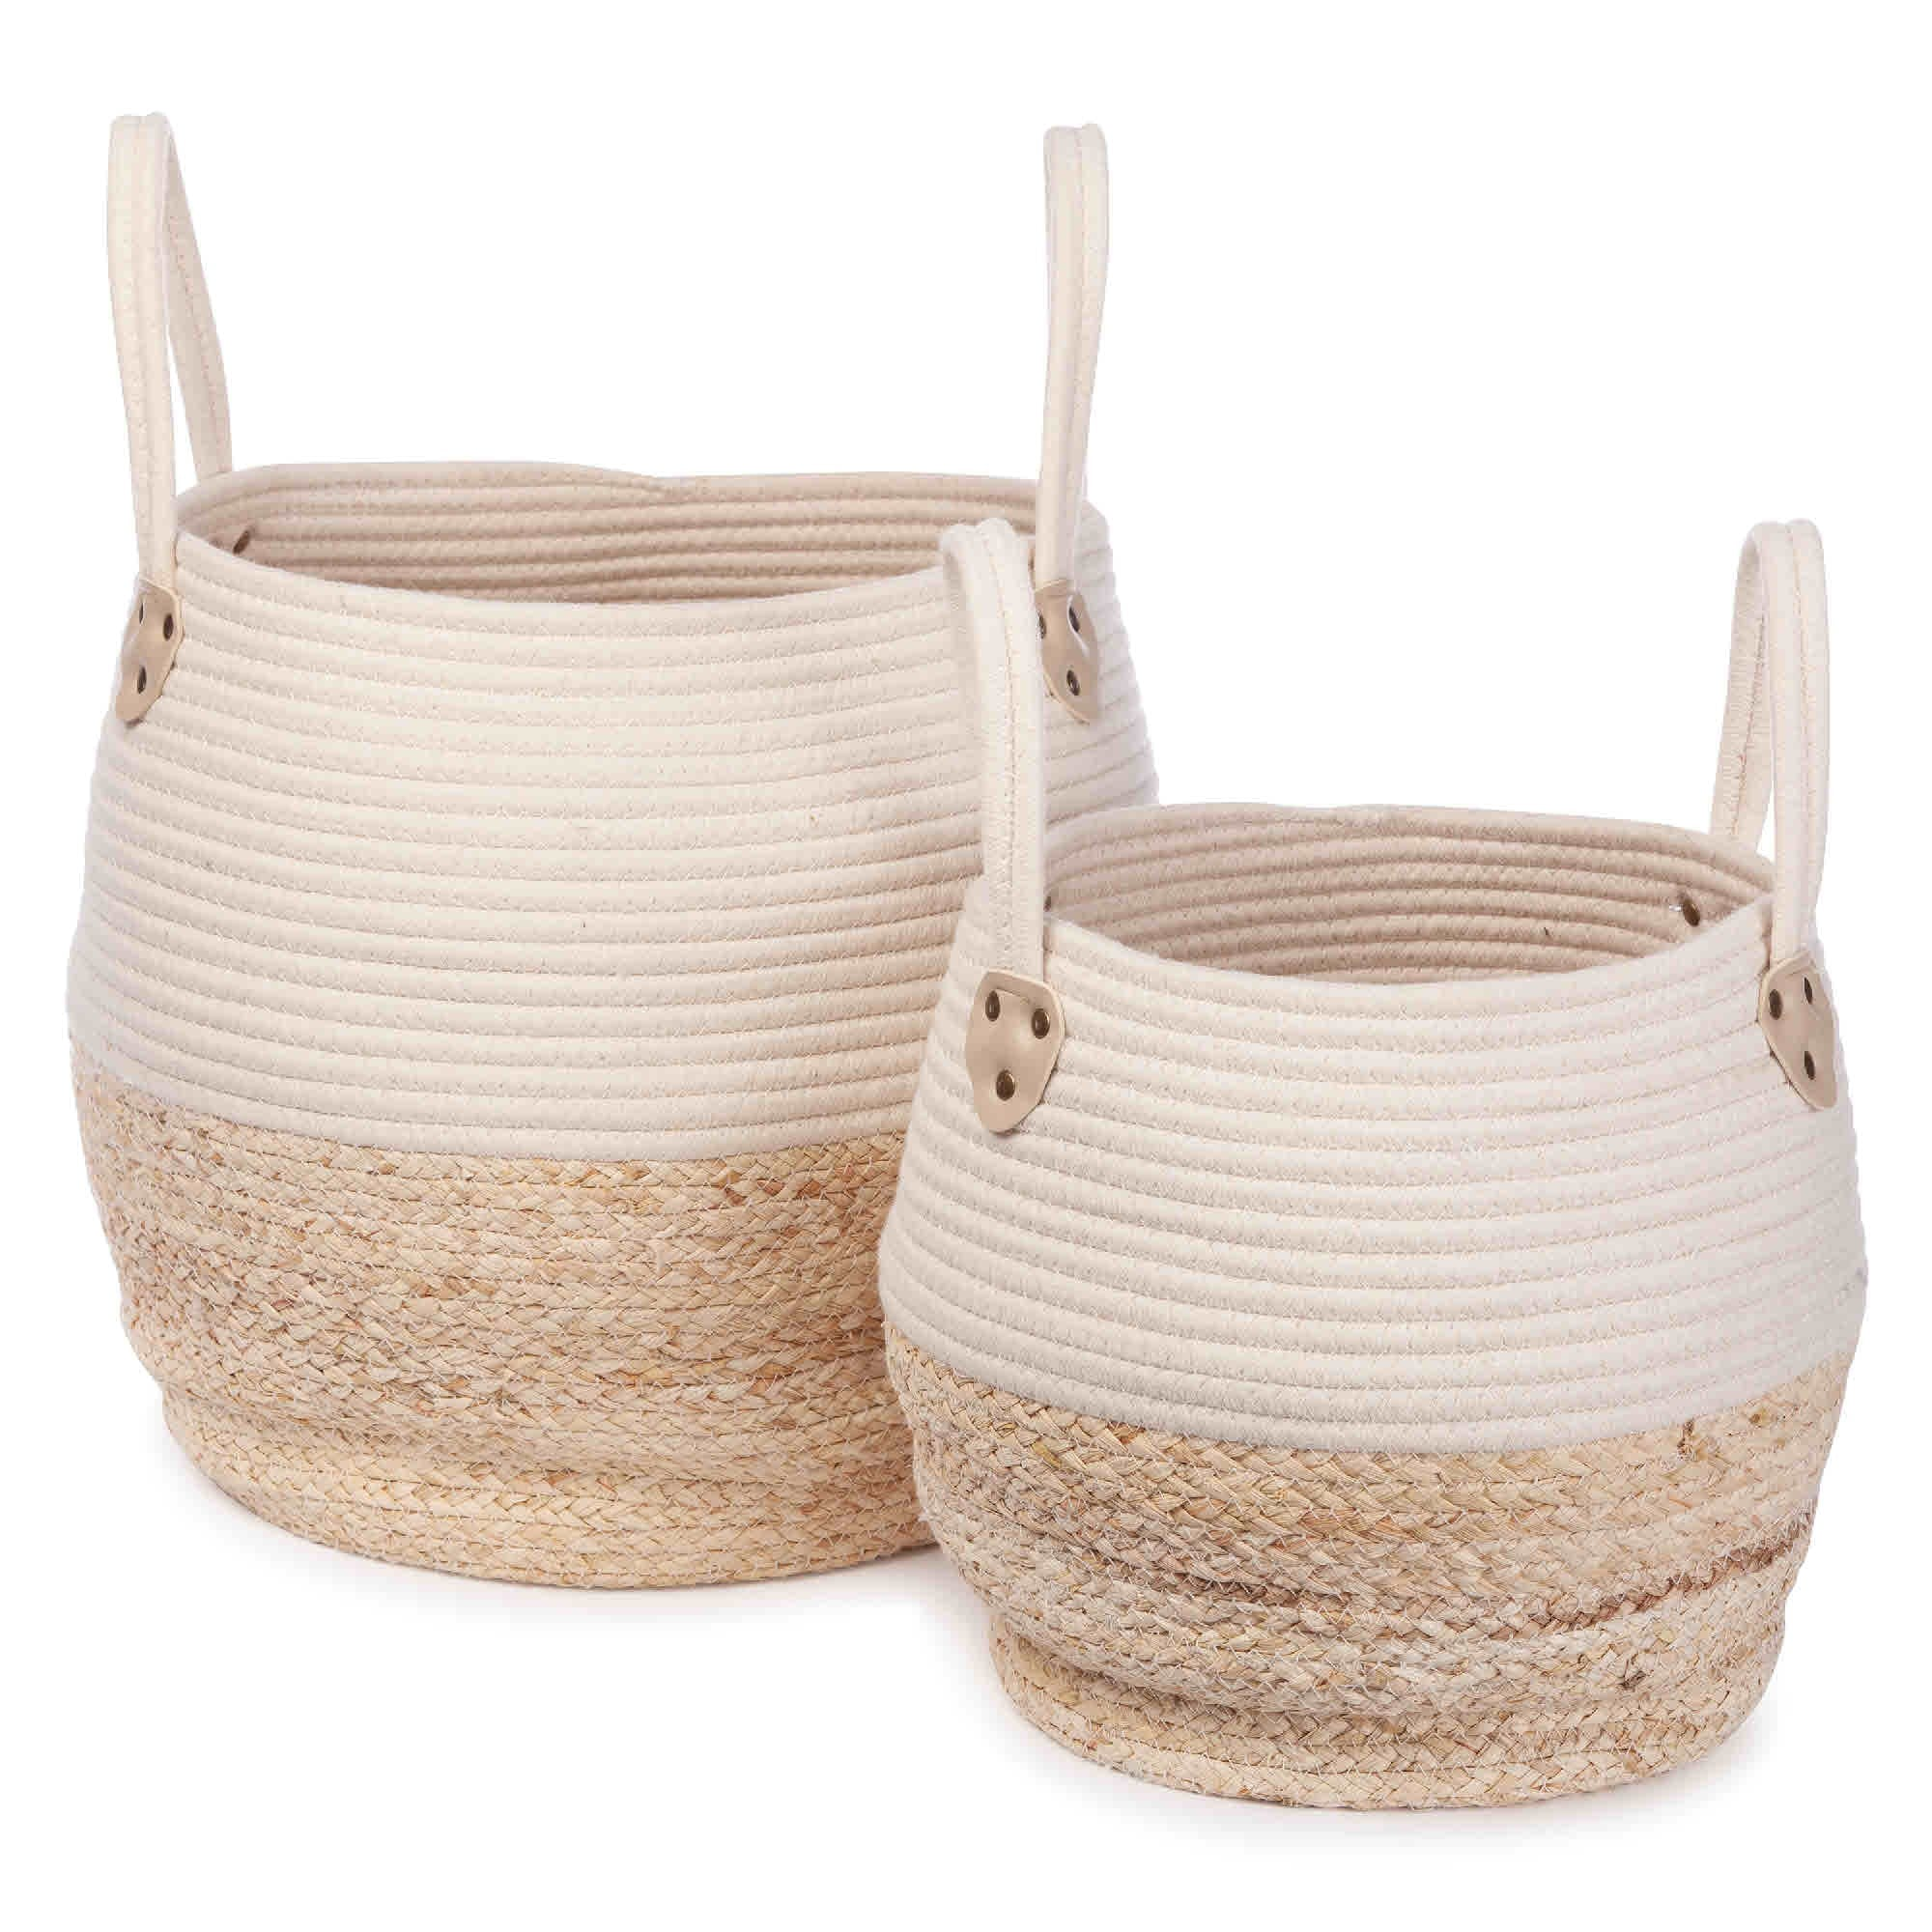 Cord and wicker basket set Cream